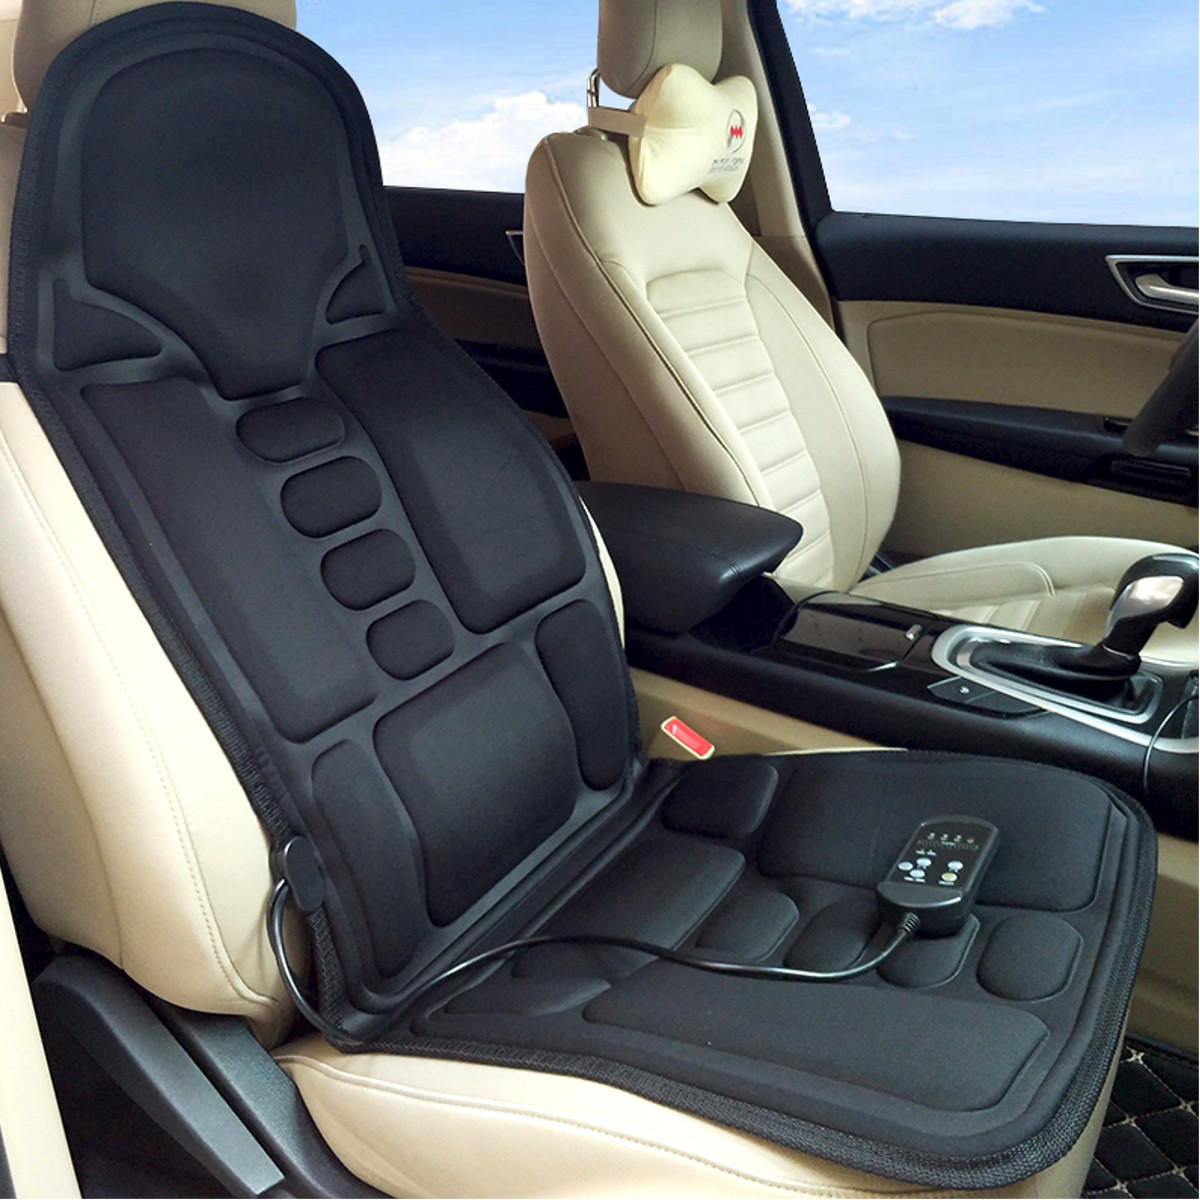 Car Massage Cushion Car Home Full Body Cervical Massager Massage Car Seat Cushion Sale Banggood Com